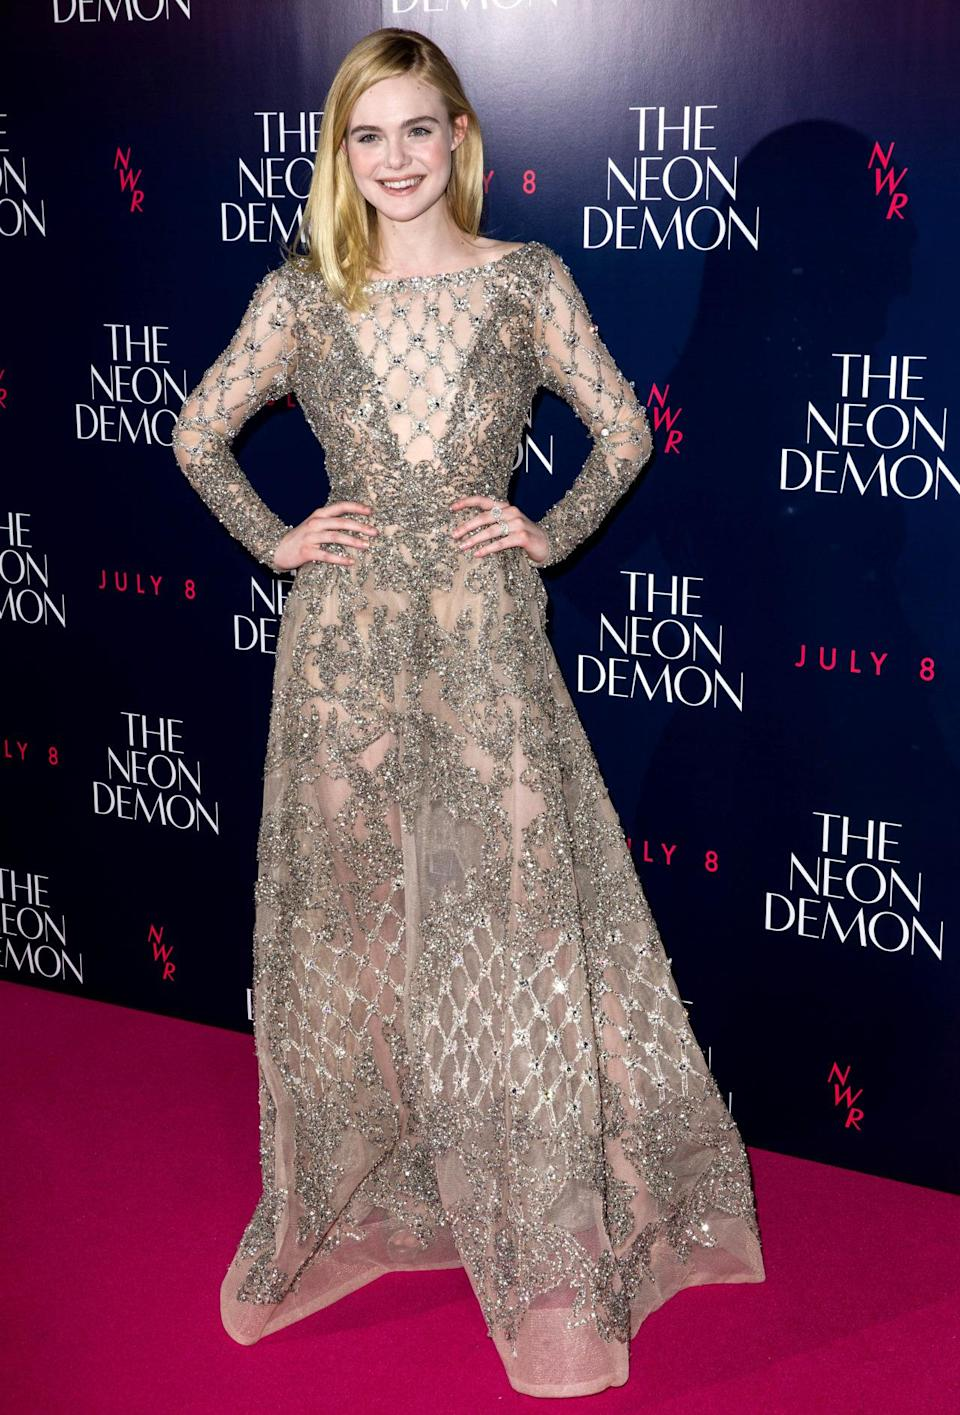 <p>Wearing a semi-sheer dress from the Elie Saab spring 2016 couture line, the 18-year-old looked divine at the premiere of her new flick in London this week. A budding style maven to watch, we reckon… <i>[Photo: Rex Features]</i></p>